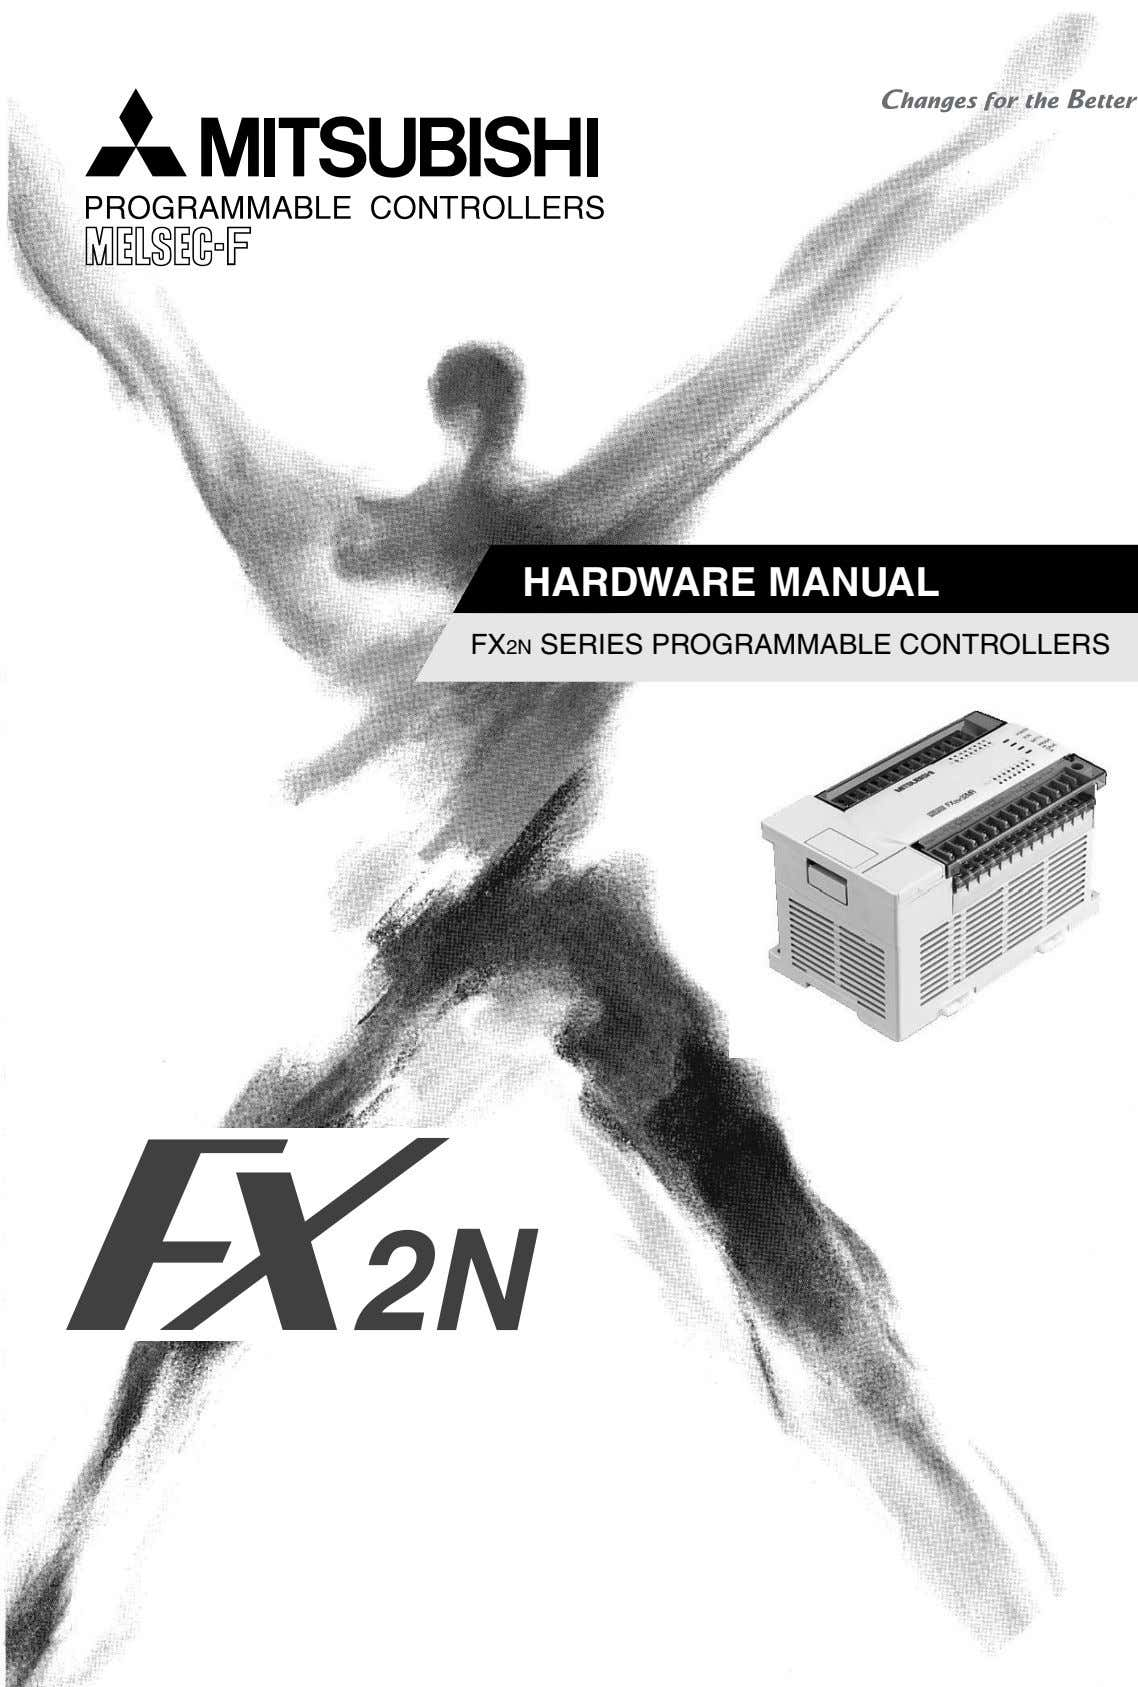 HARDWARE MANUAL FX2N SERIES PROGRAMMABLE CONTROLLERS